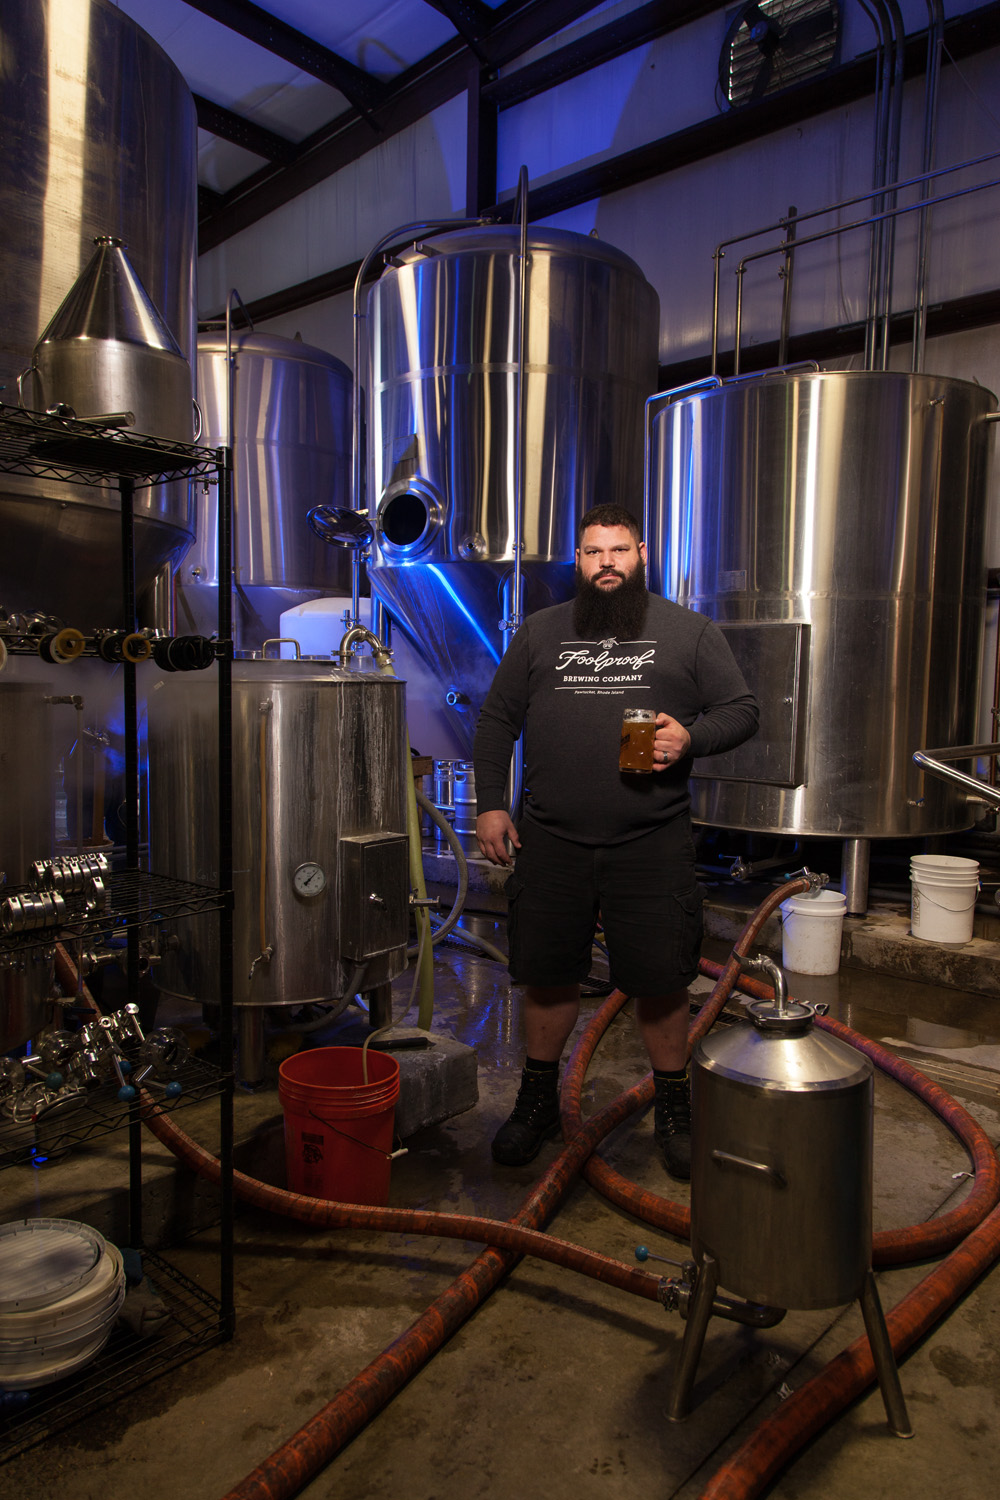 Steve Sharp, Brewmaster at Foolproof Brewing Co. Pawtucket, RI Established in 2012